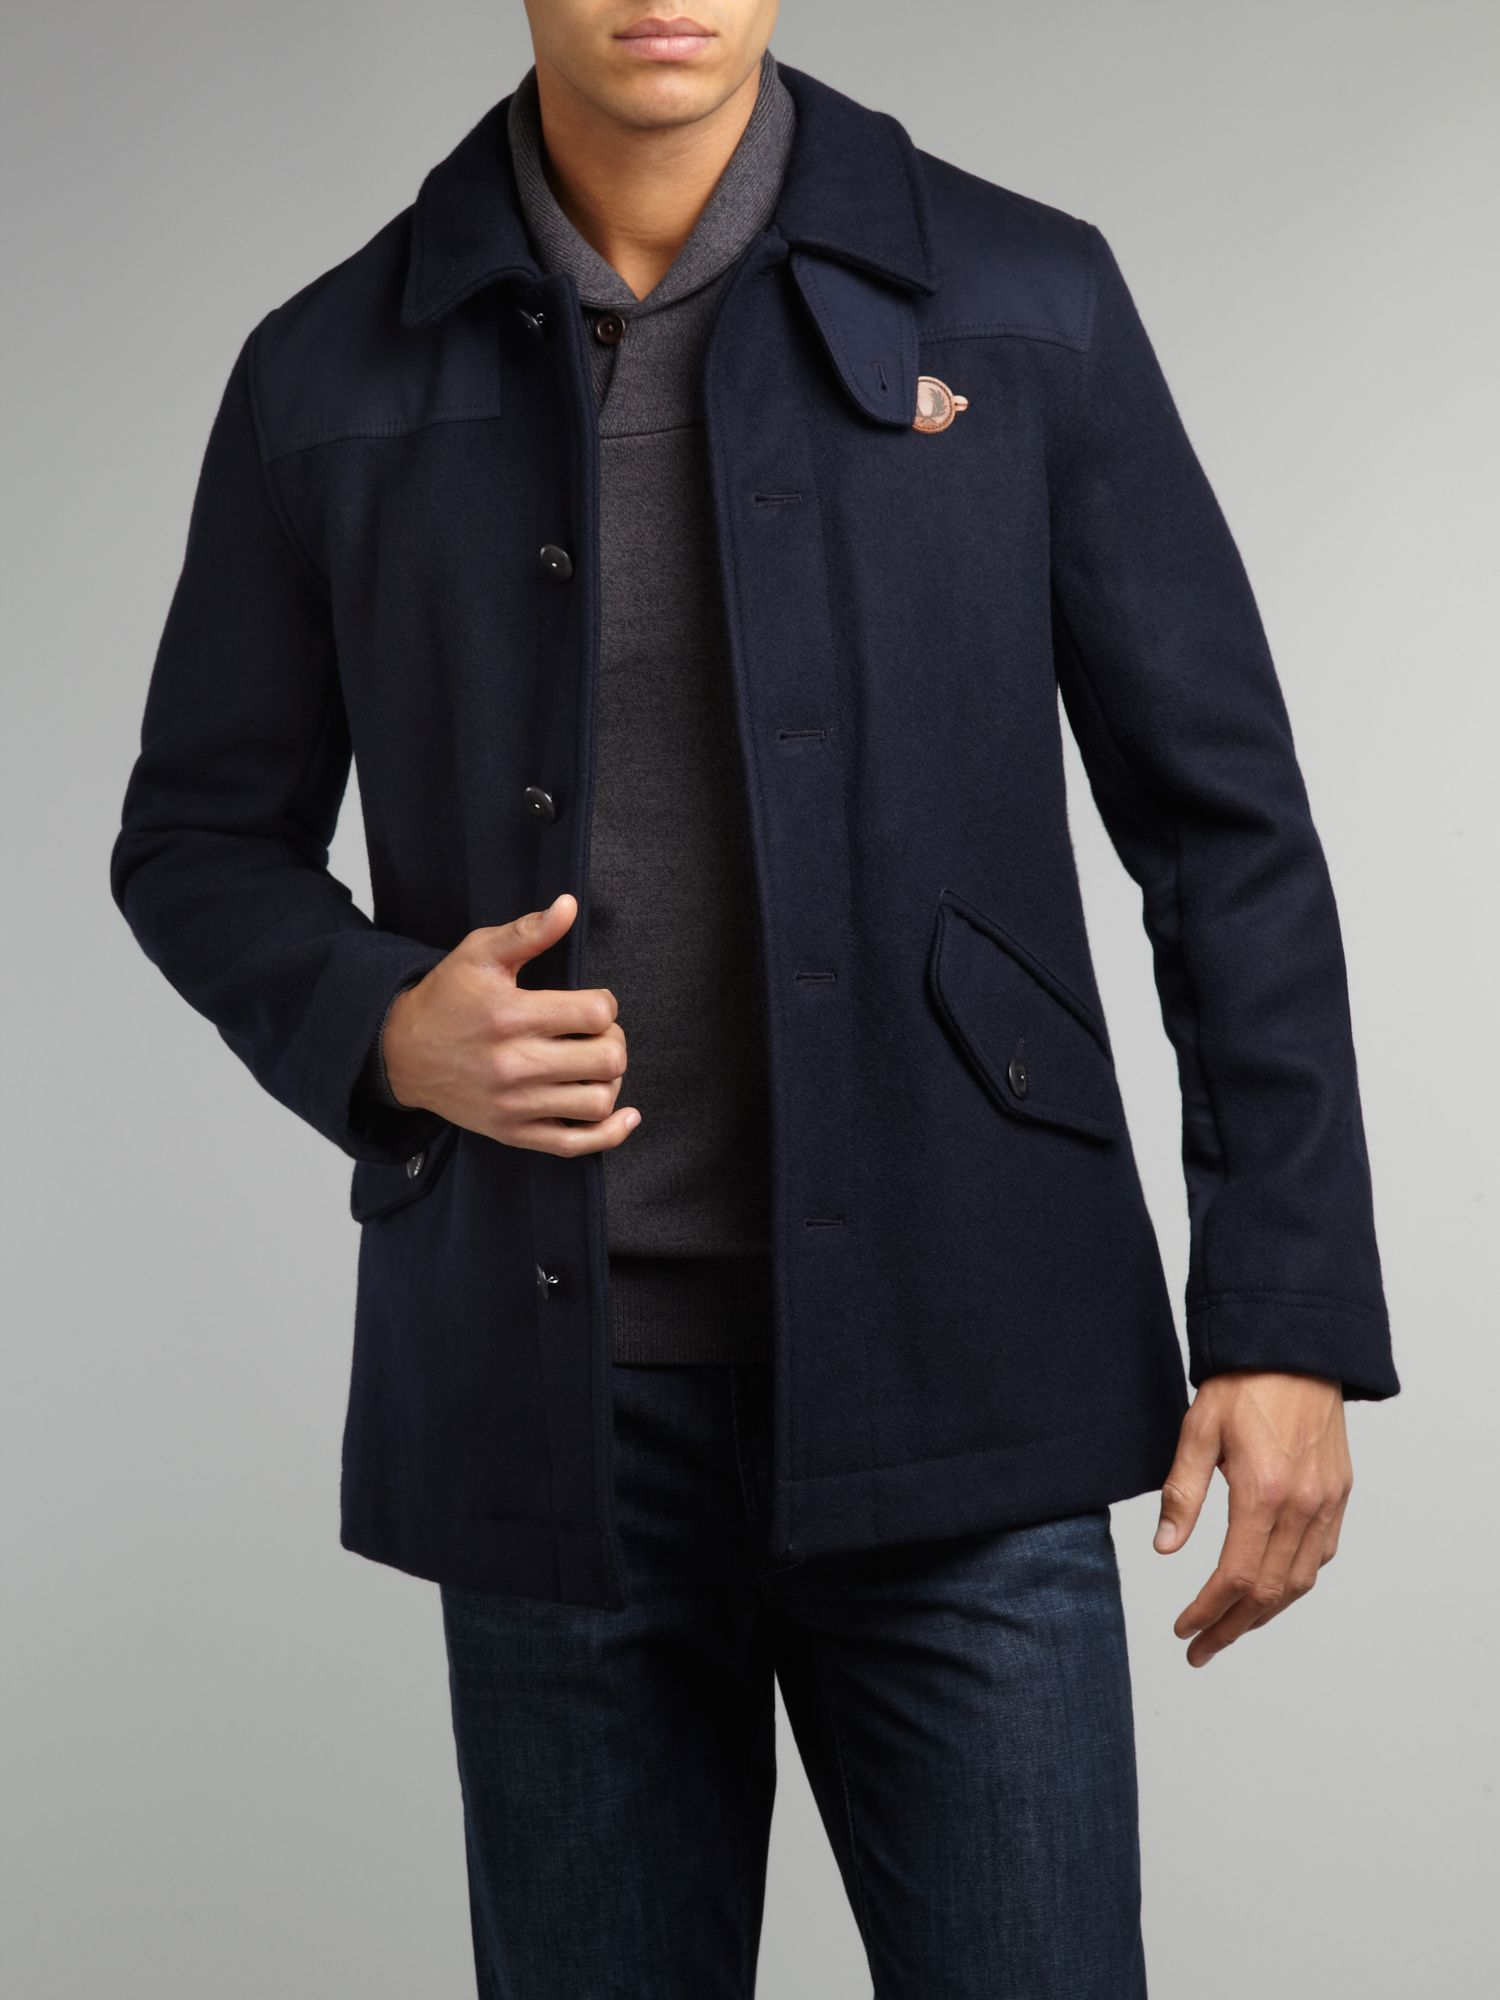 lyst fred perry donkey jacket in blue for men. Black Bedroom Furniture Sets. Home Design Ideas